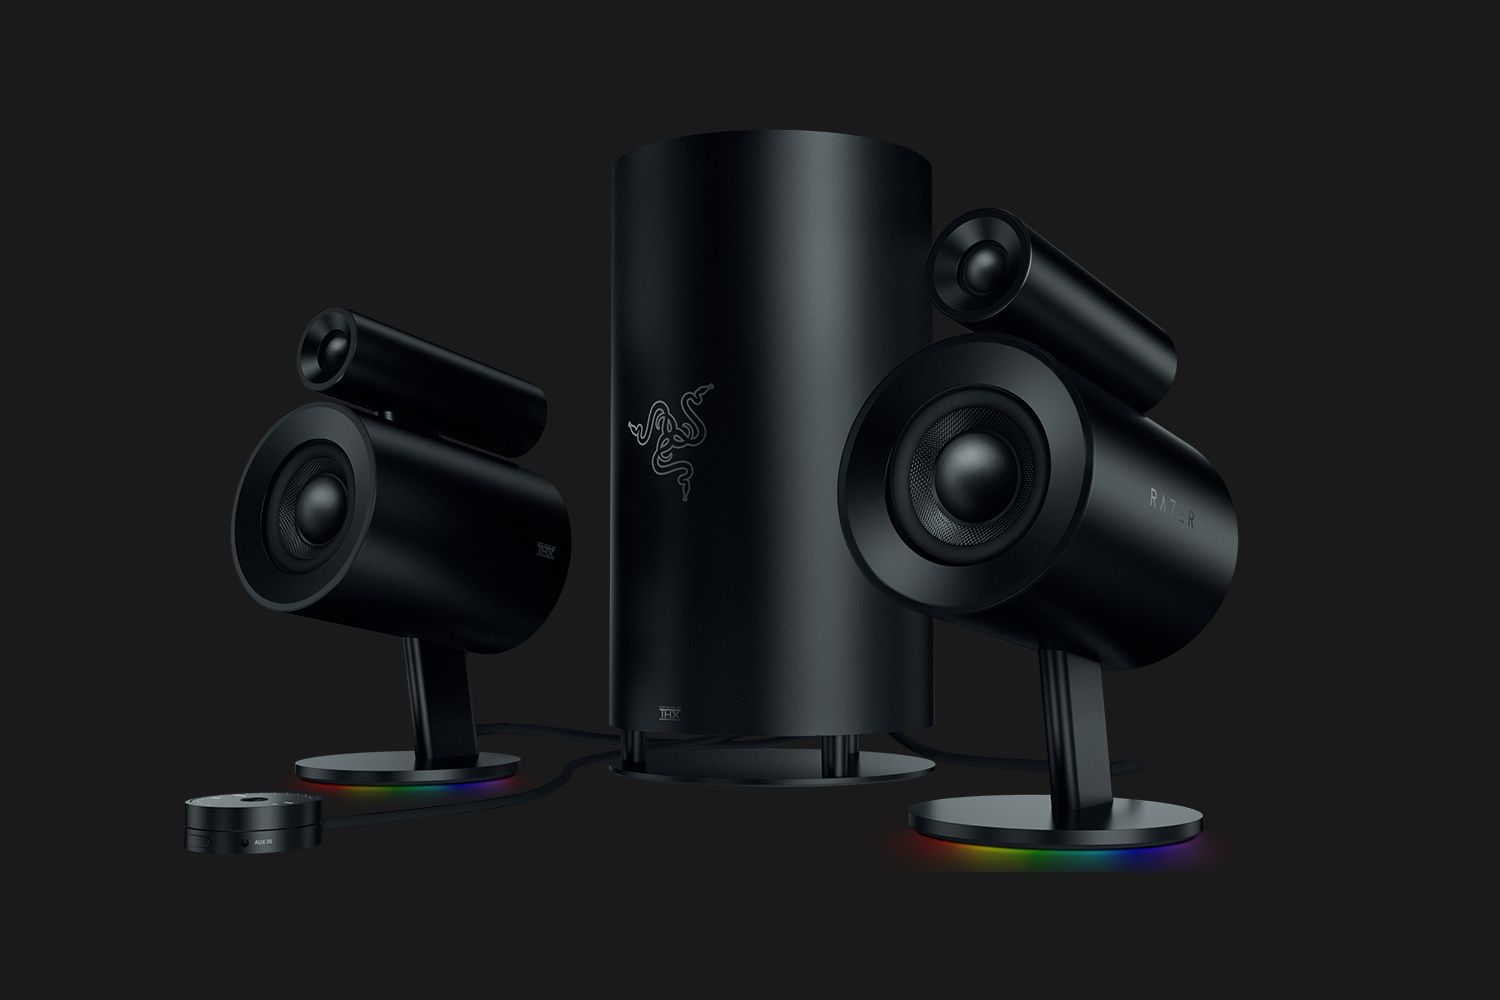 Expert opinion on recently launched Razer Nommo Pro